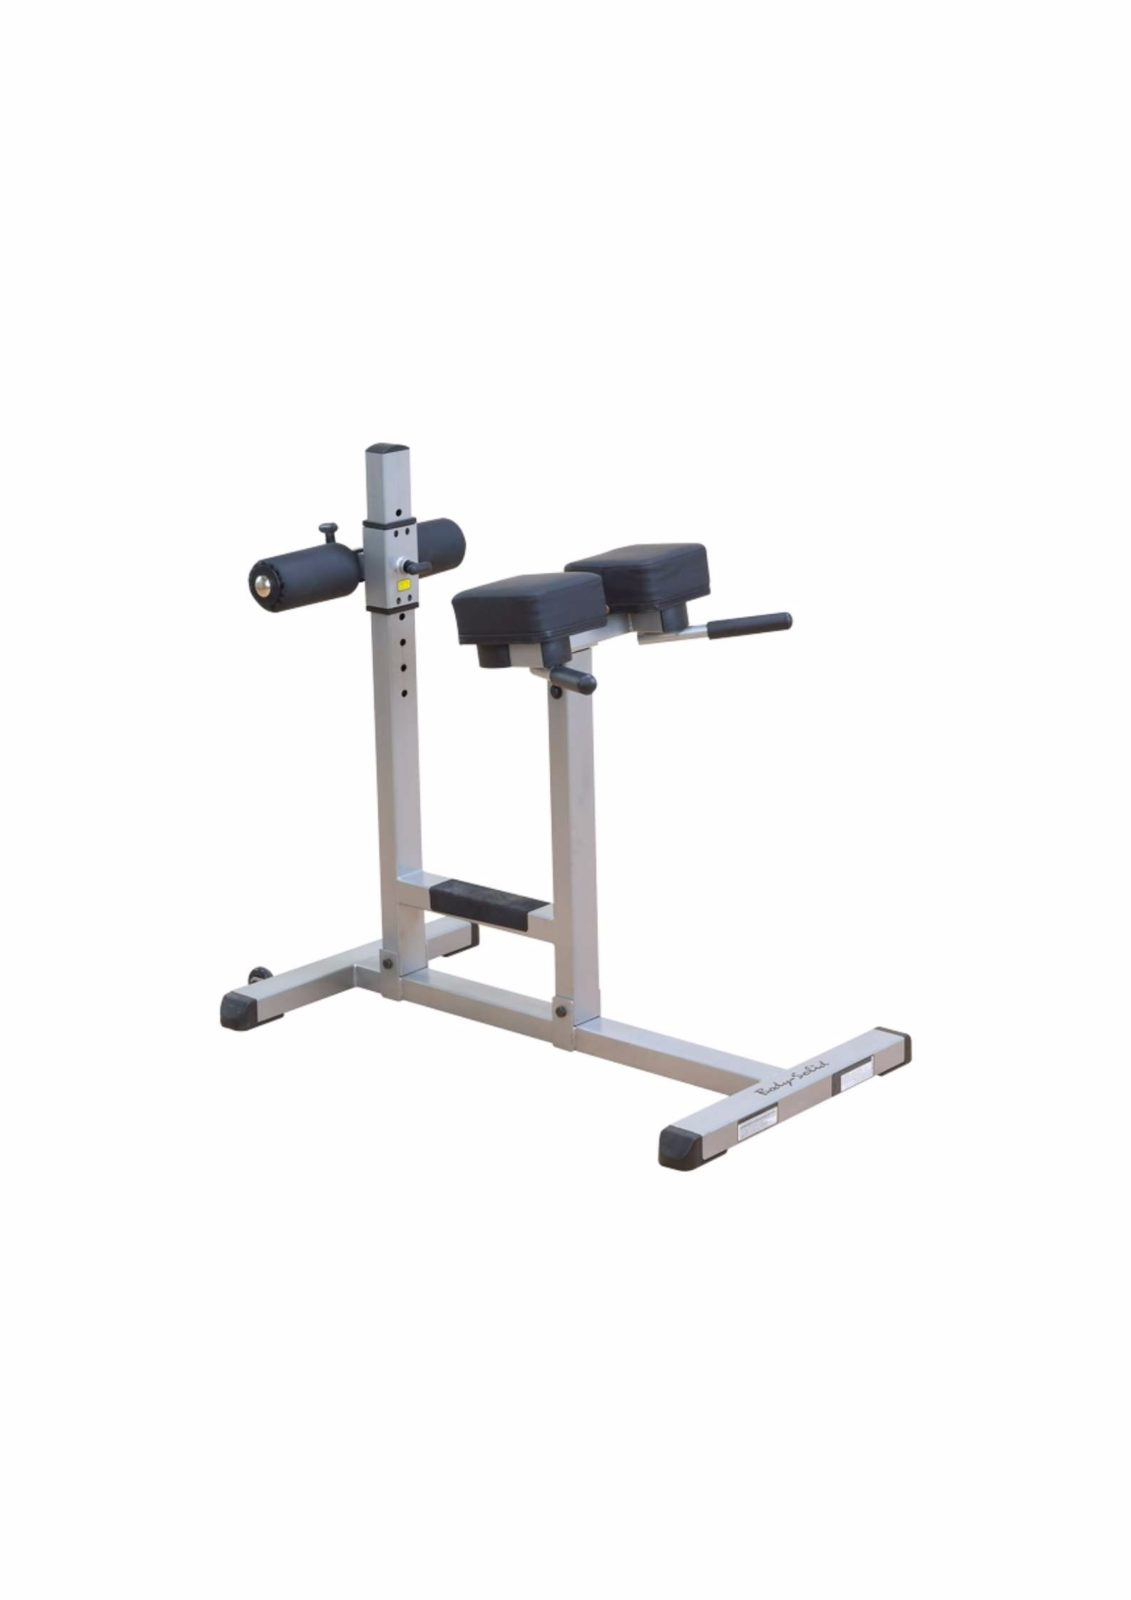 gym chair shop glass dining room table and chairs bodysolid roman bench fitness equipment ireland best